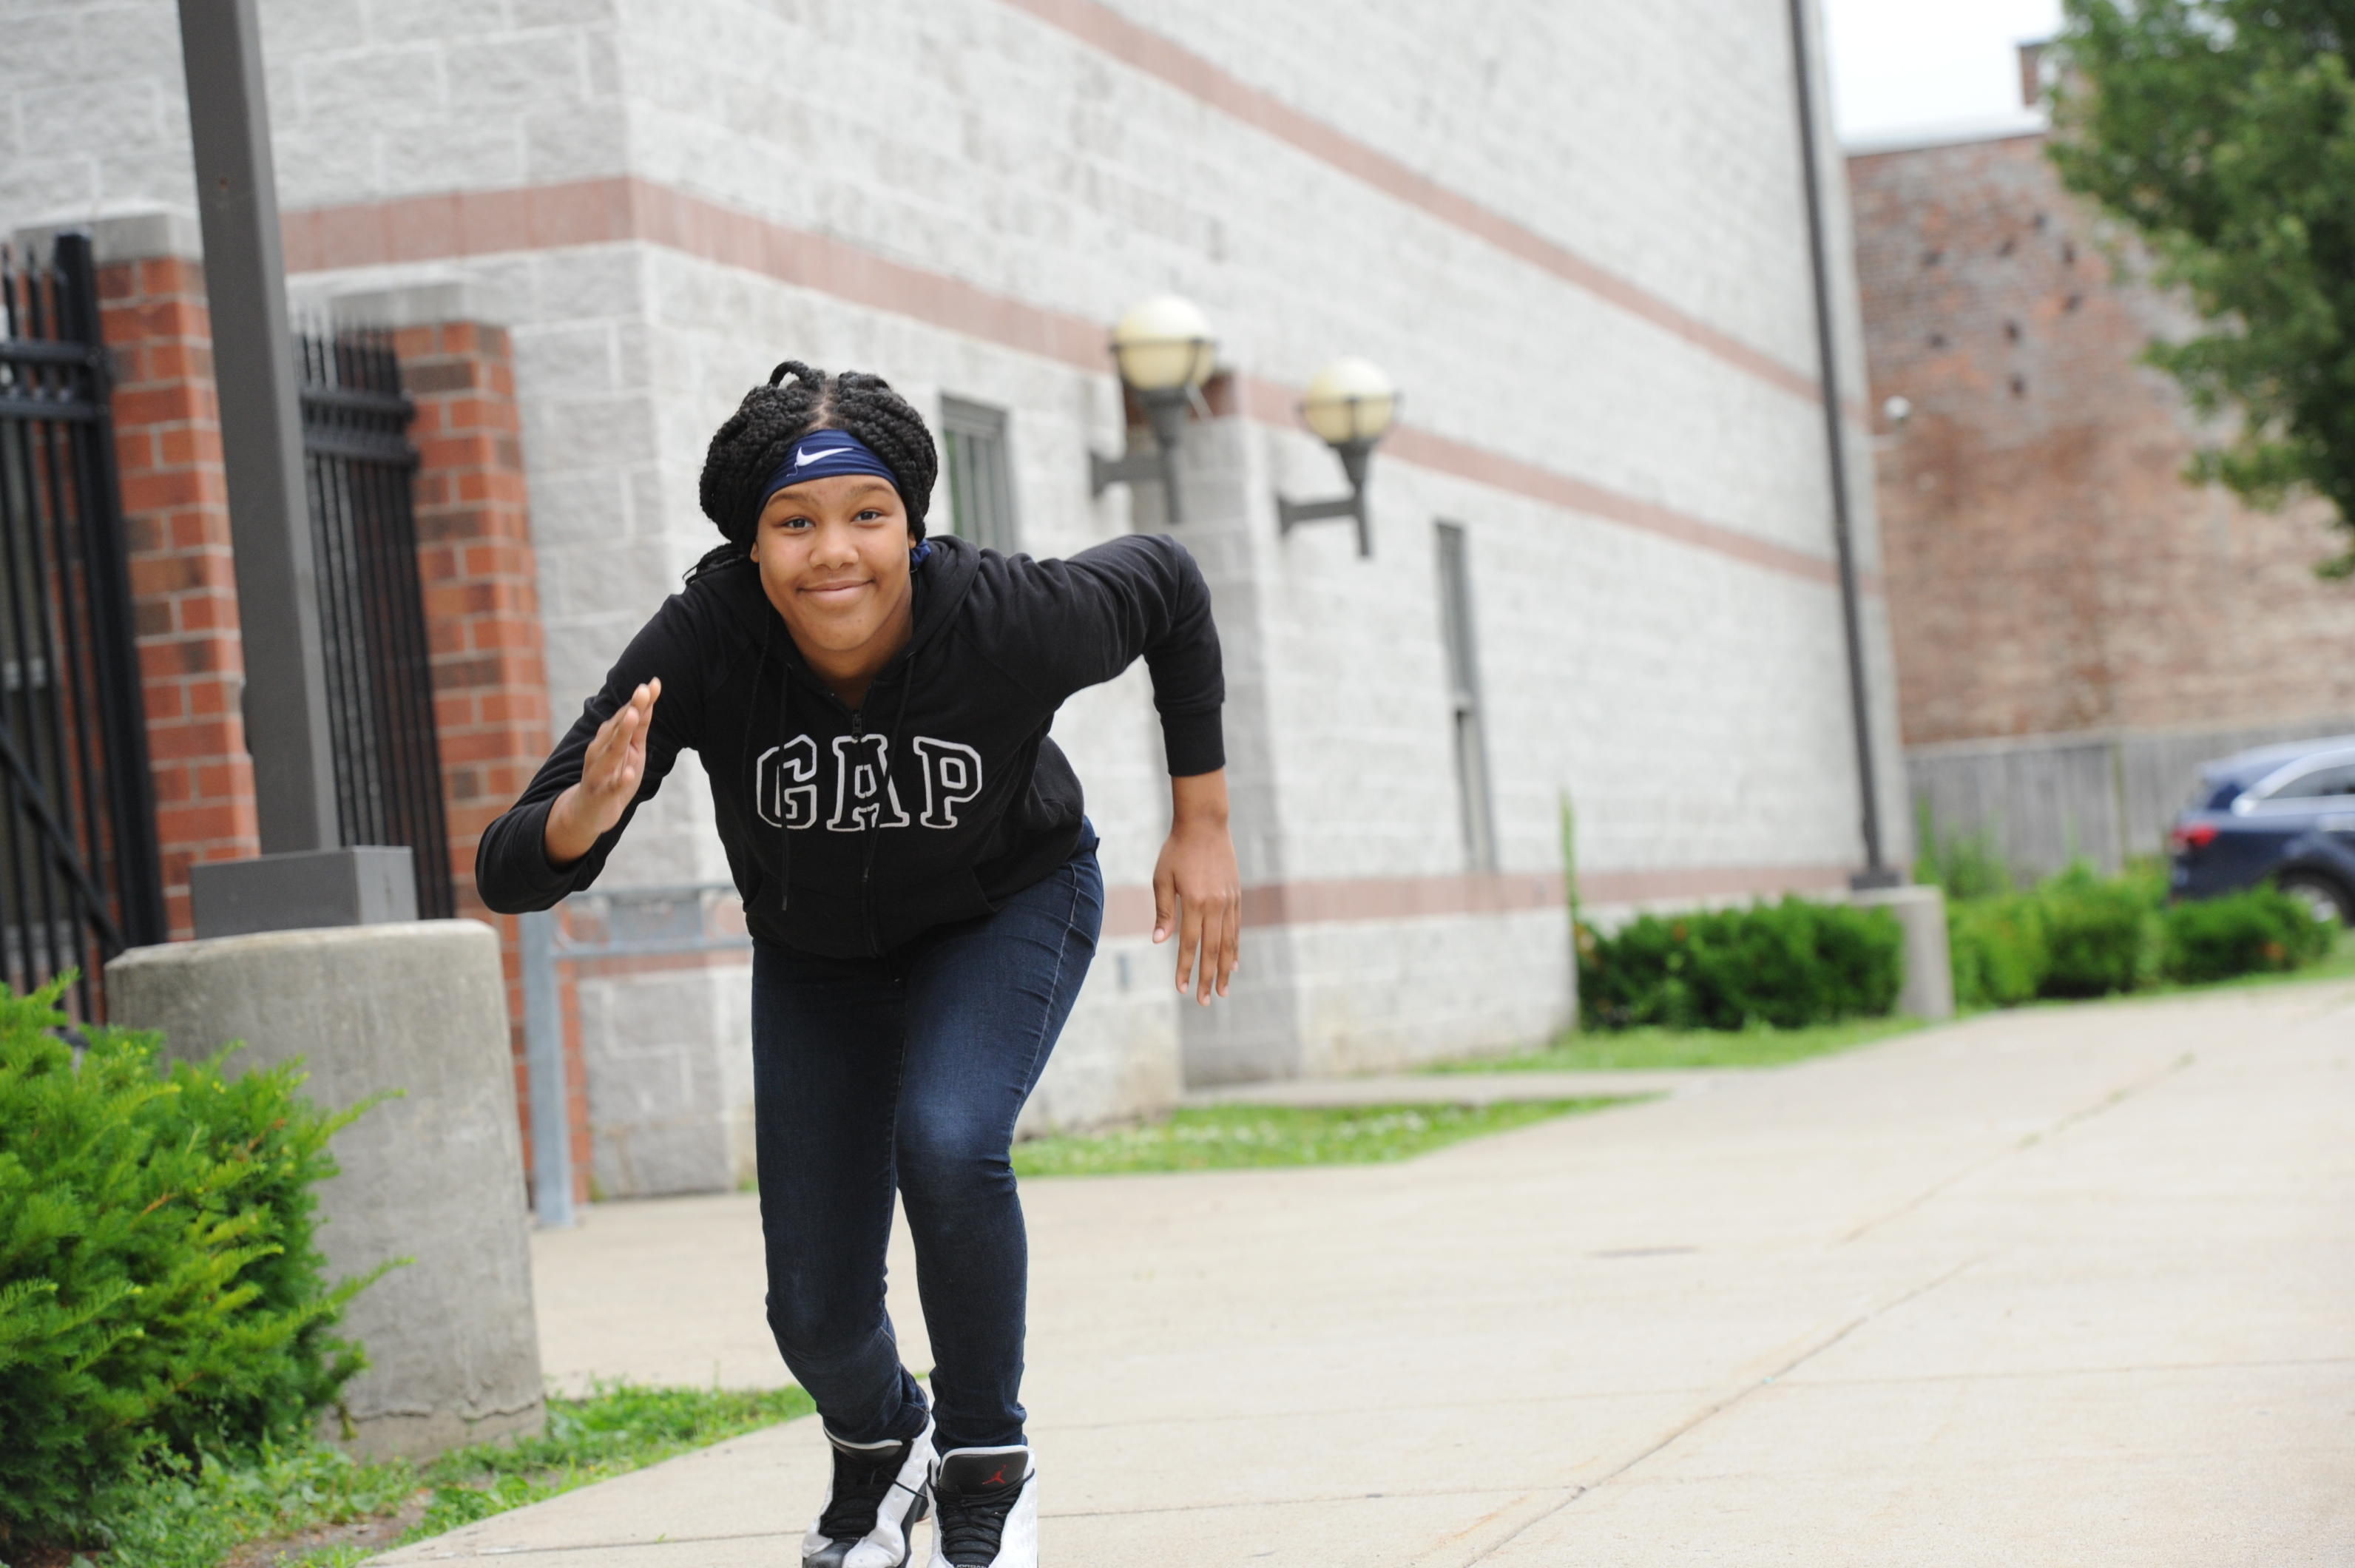 Female student practicing running track outside the school.